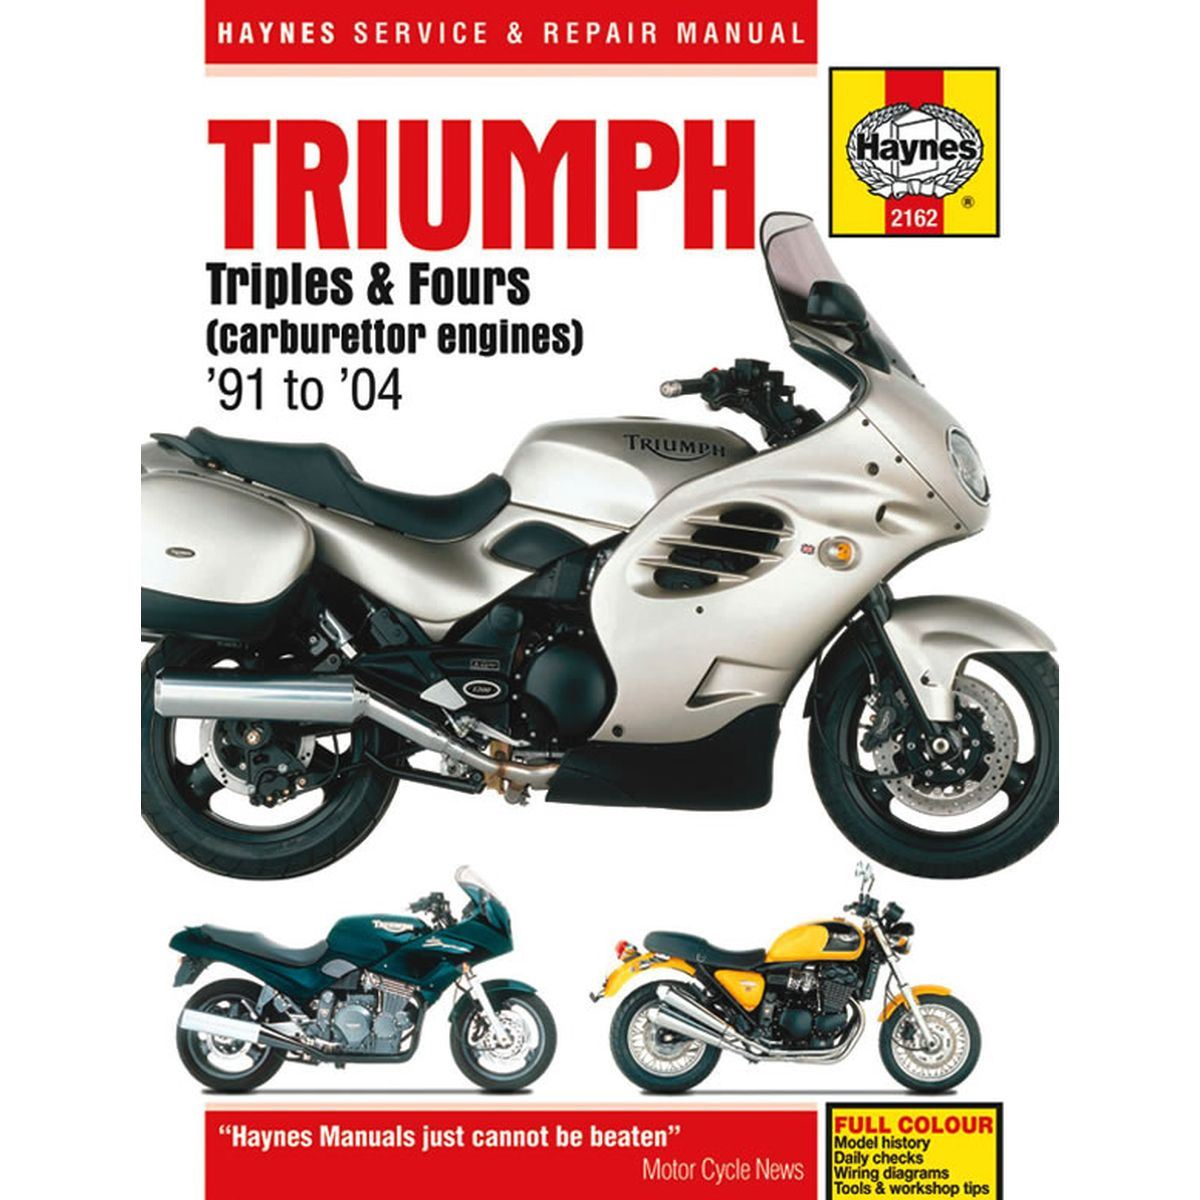 Vb 7754 Triumph Trophy Motorcycle Wiring Diagram Download Diagram